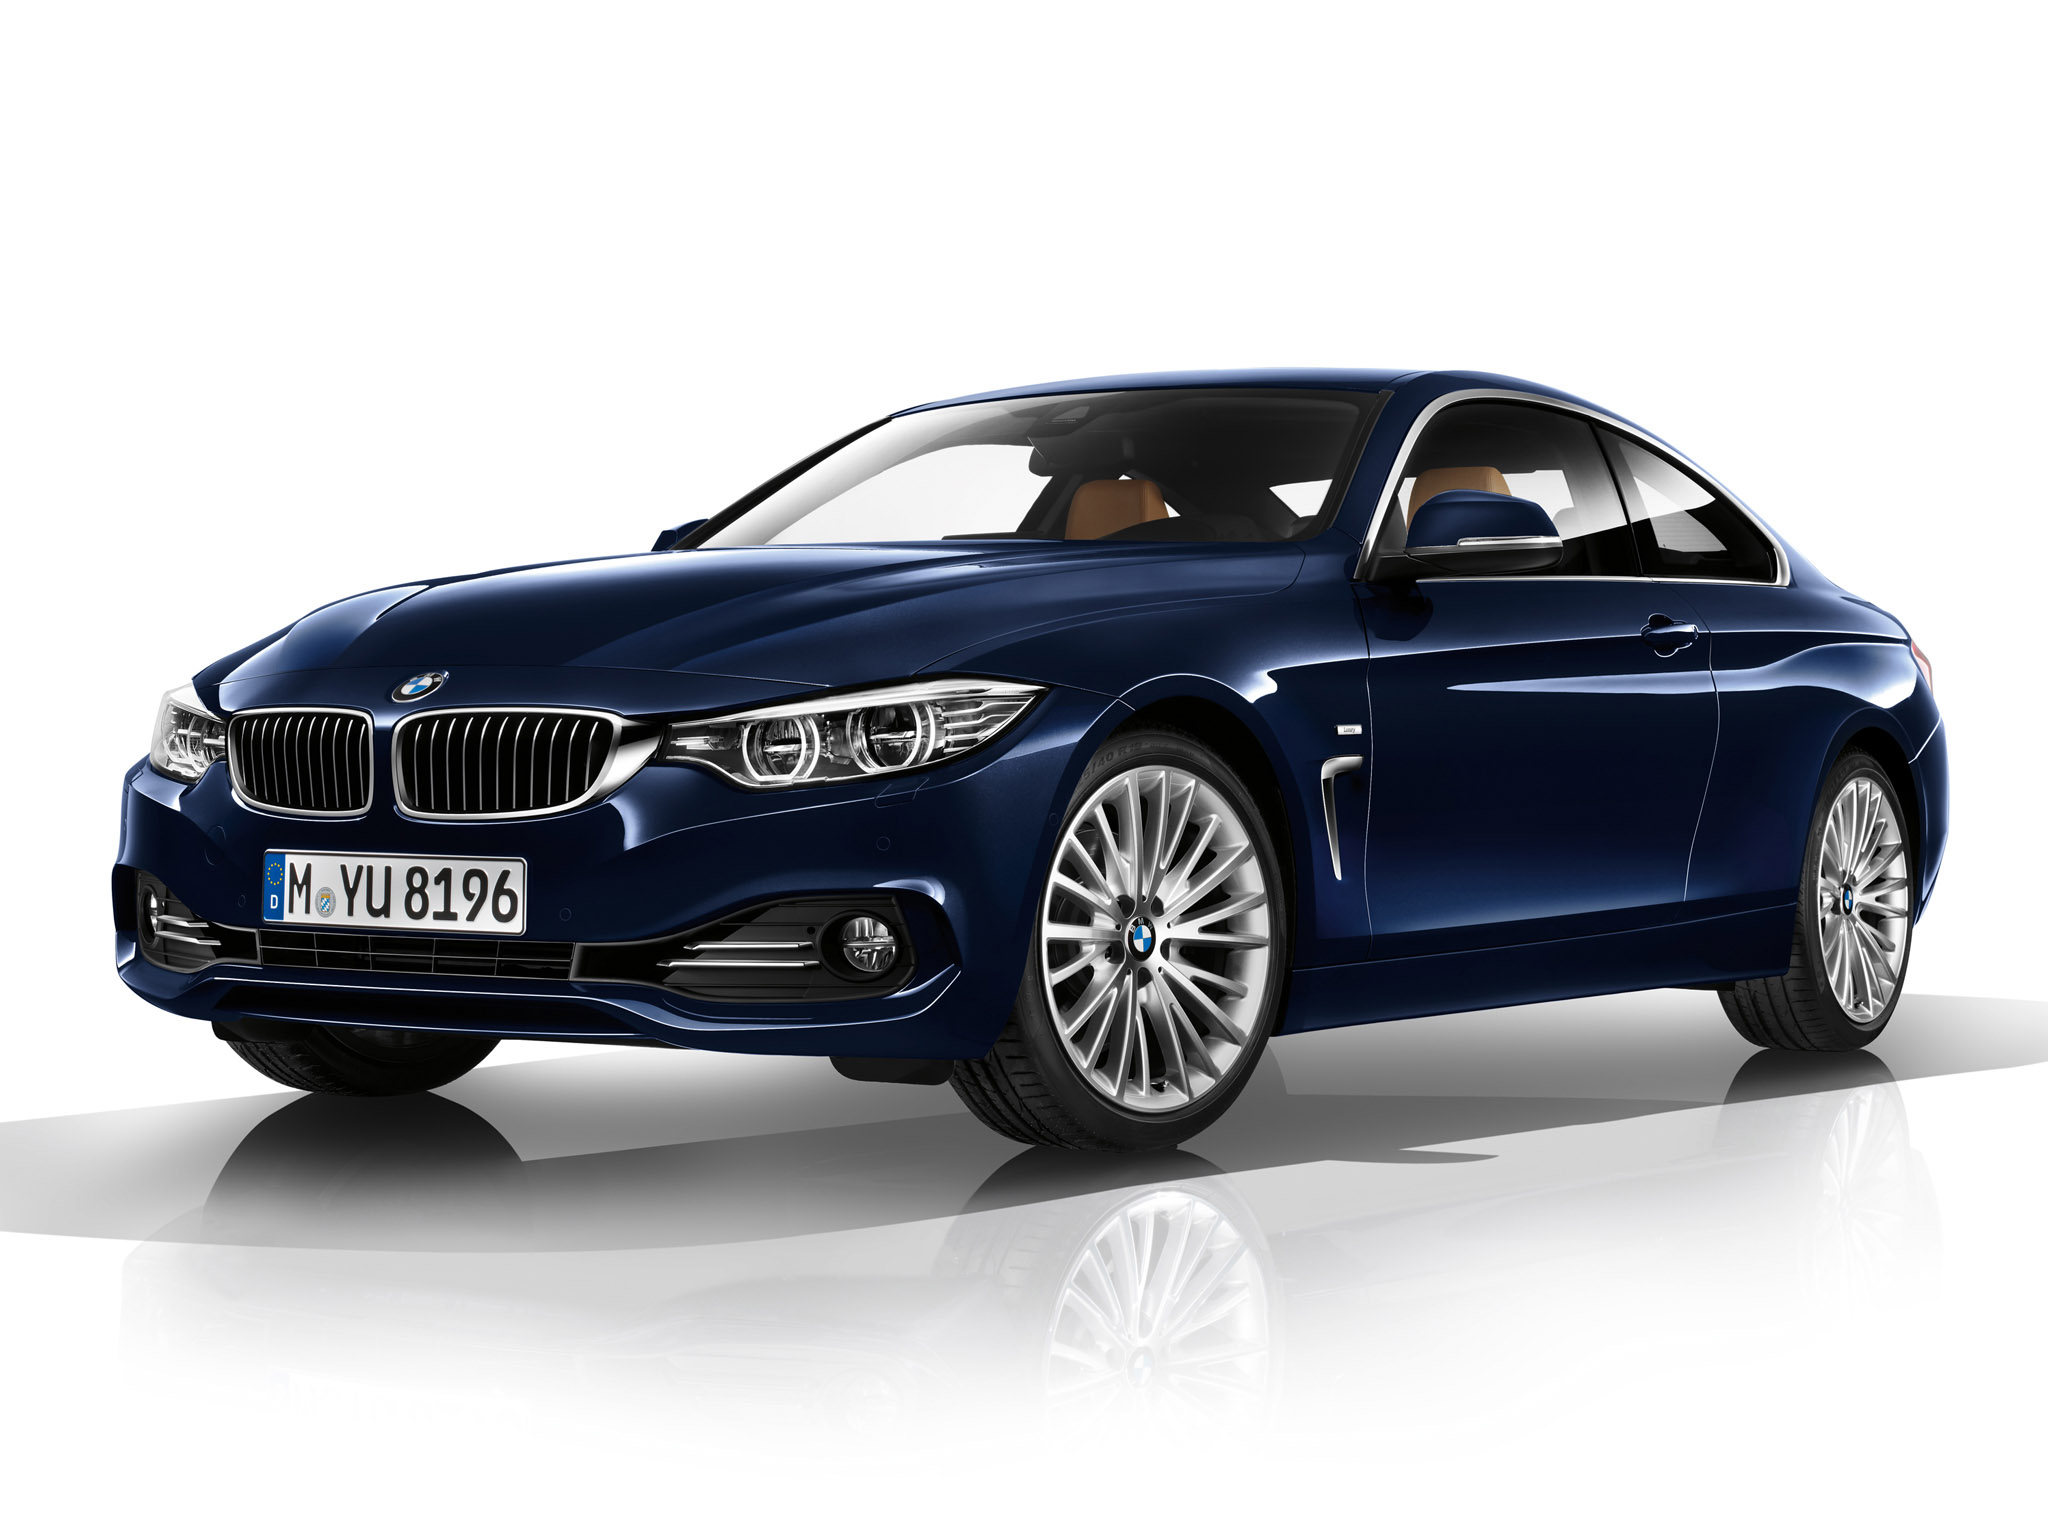 BMW 4 series 428i 2013 photo - 2